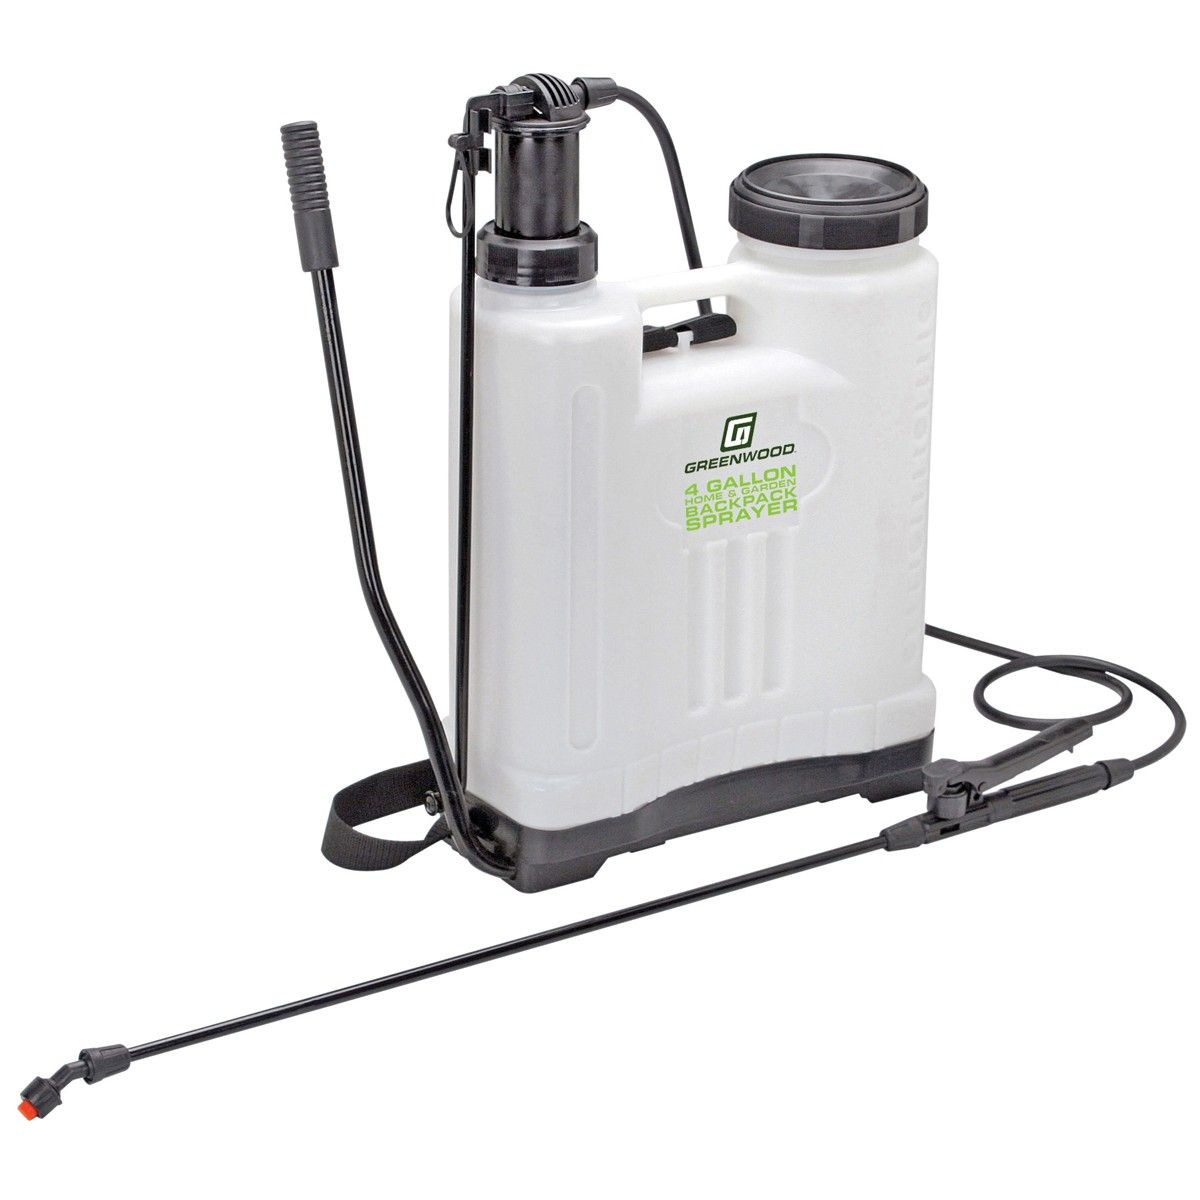 4 gal backpack sprayer kyle wish list pinterest